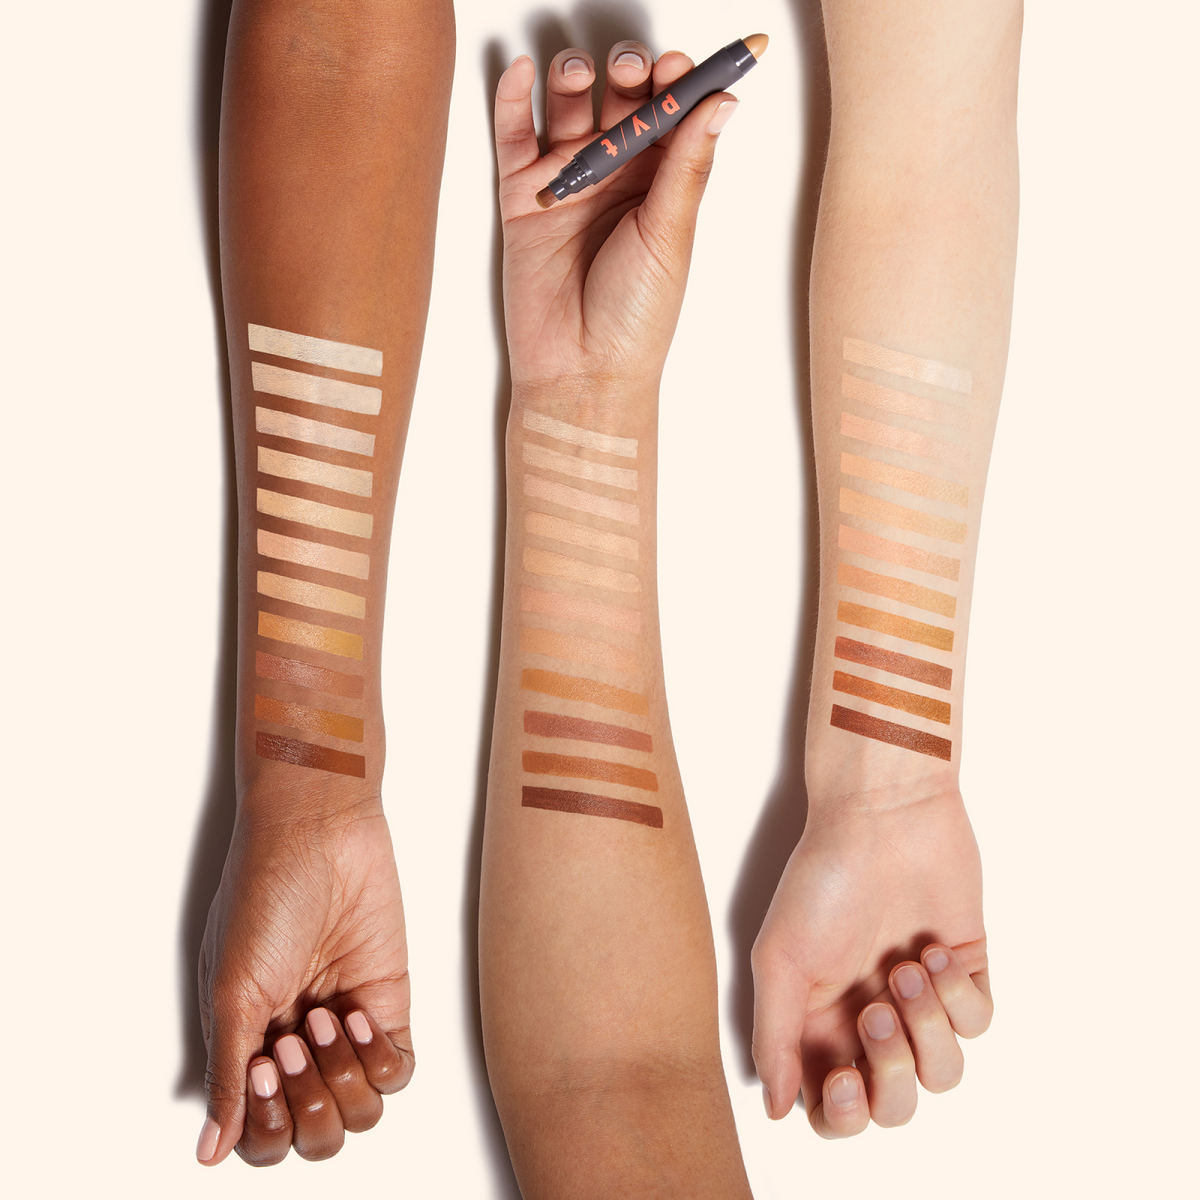 several shades of concealer to match a variety of skin colors